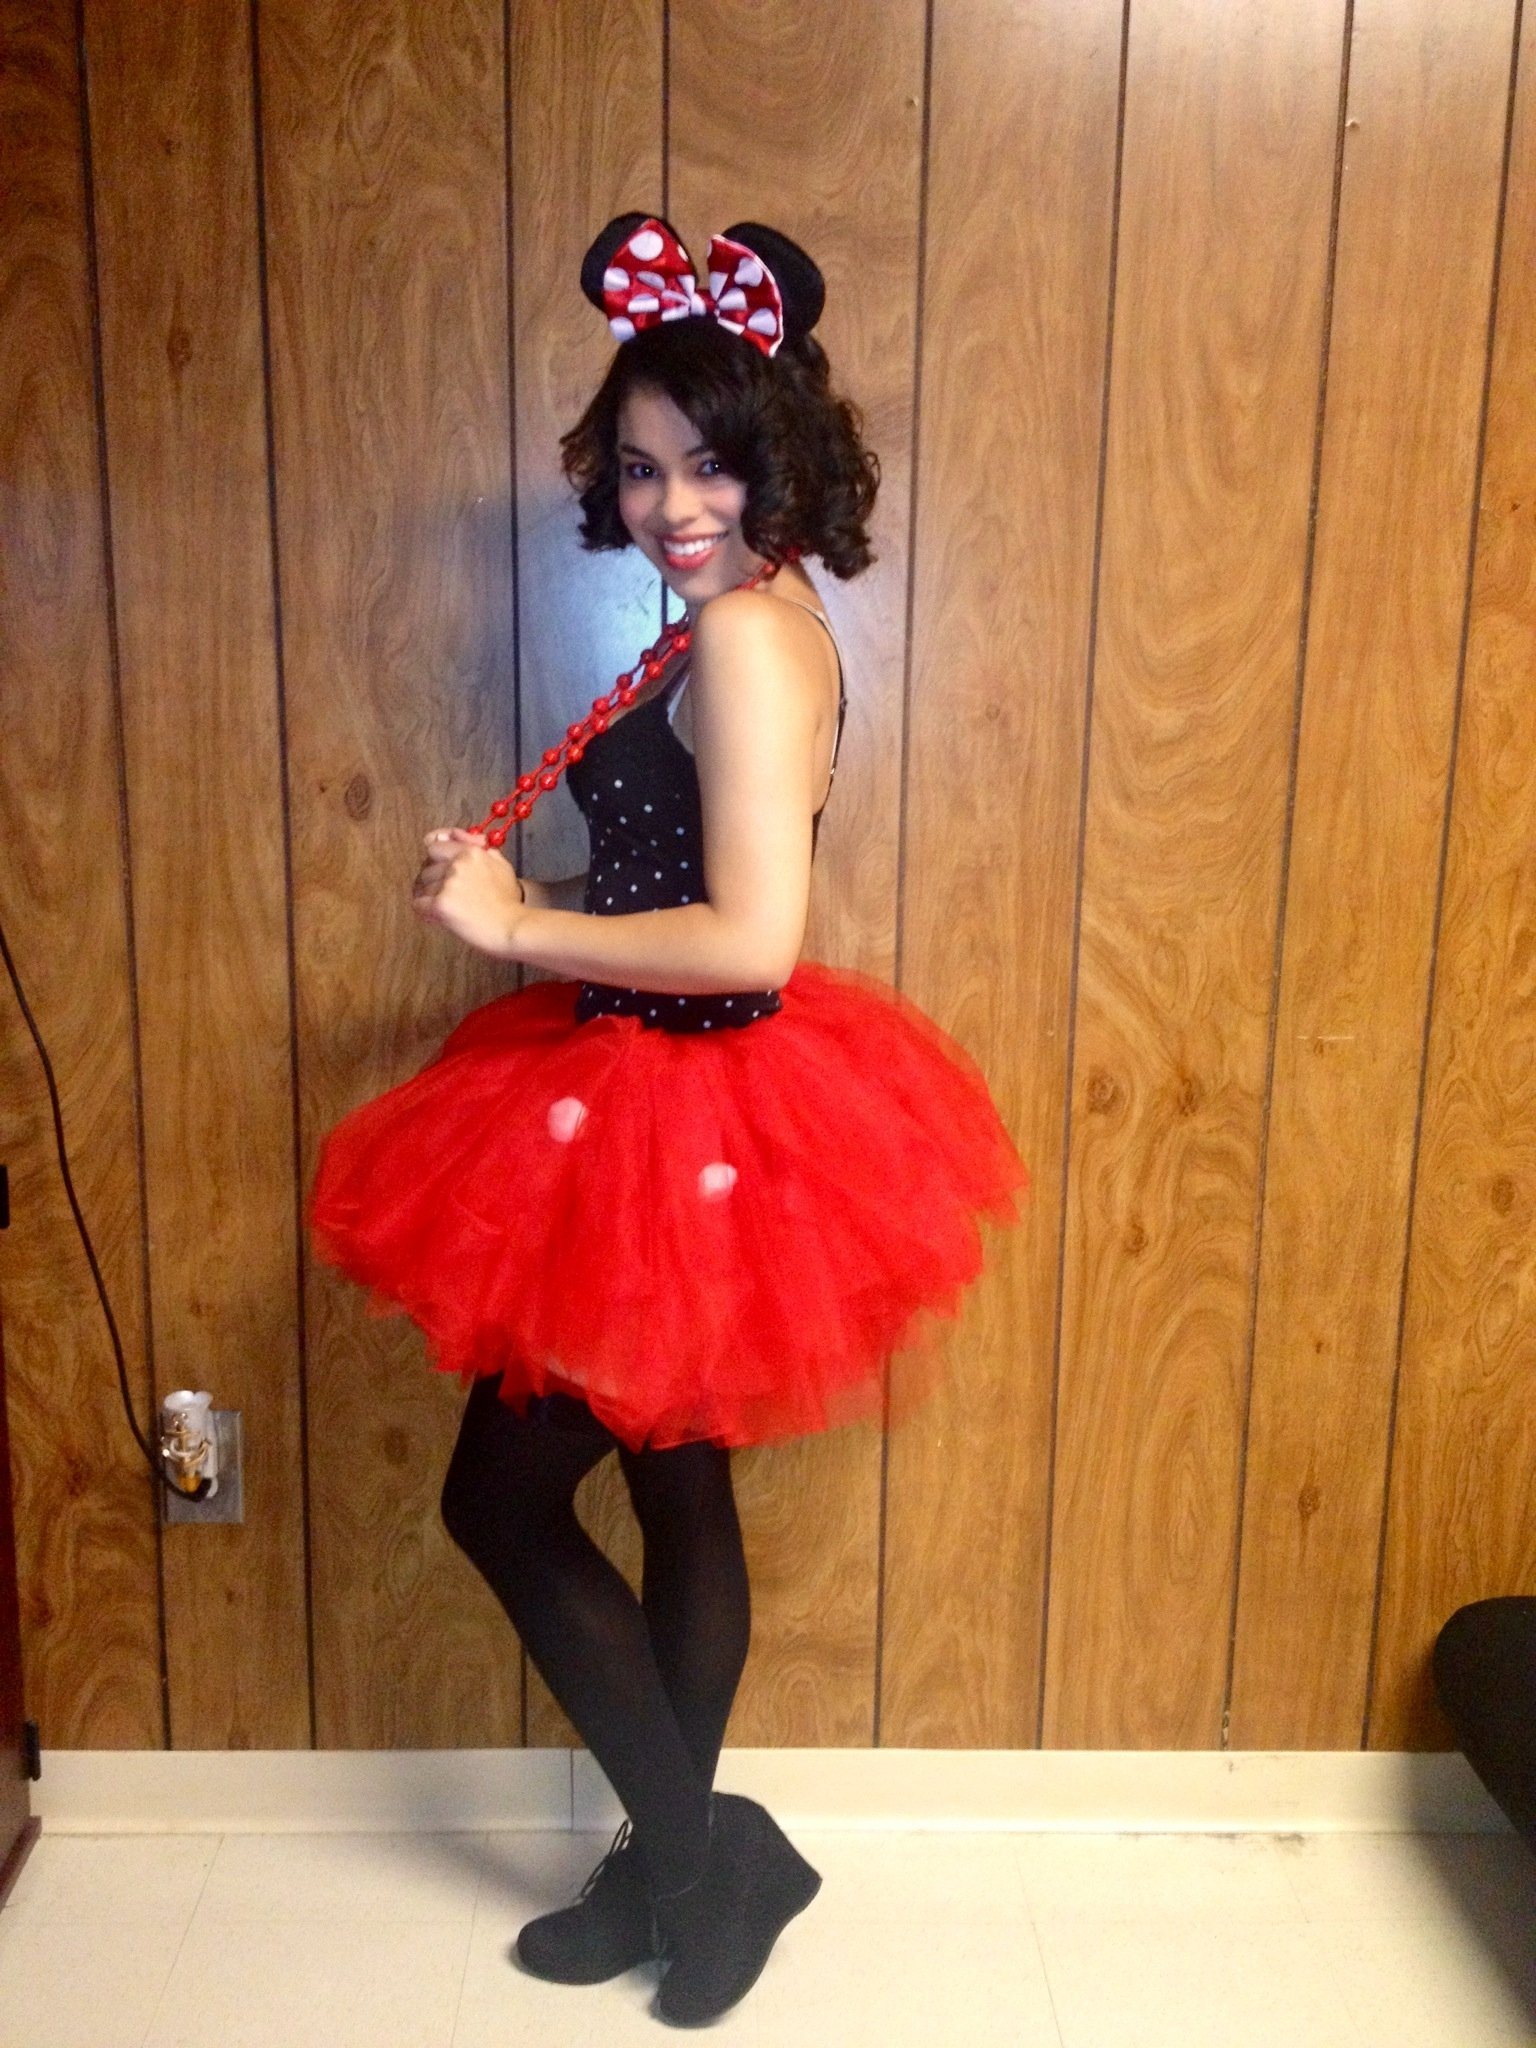 10 Great Minnie Mouse Costume Ideas For Women minnie mouse costume laurasland 2020